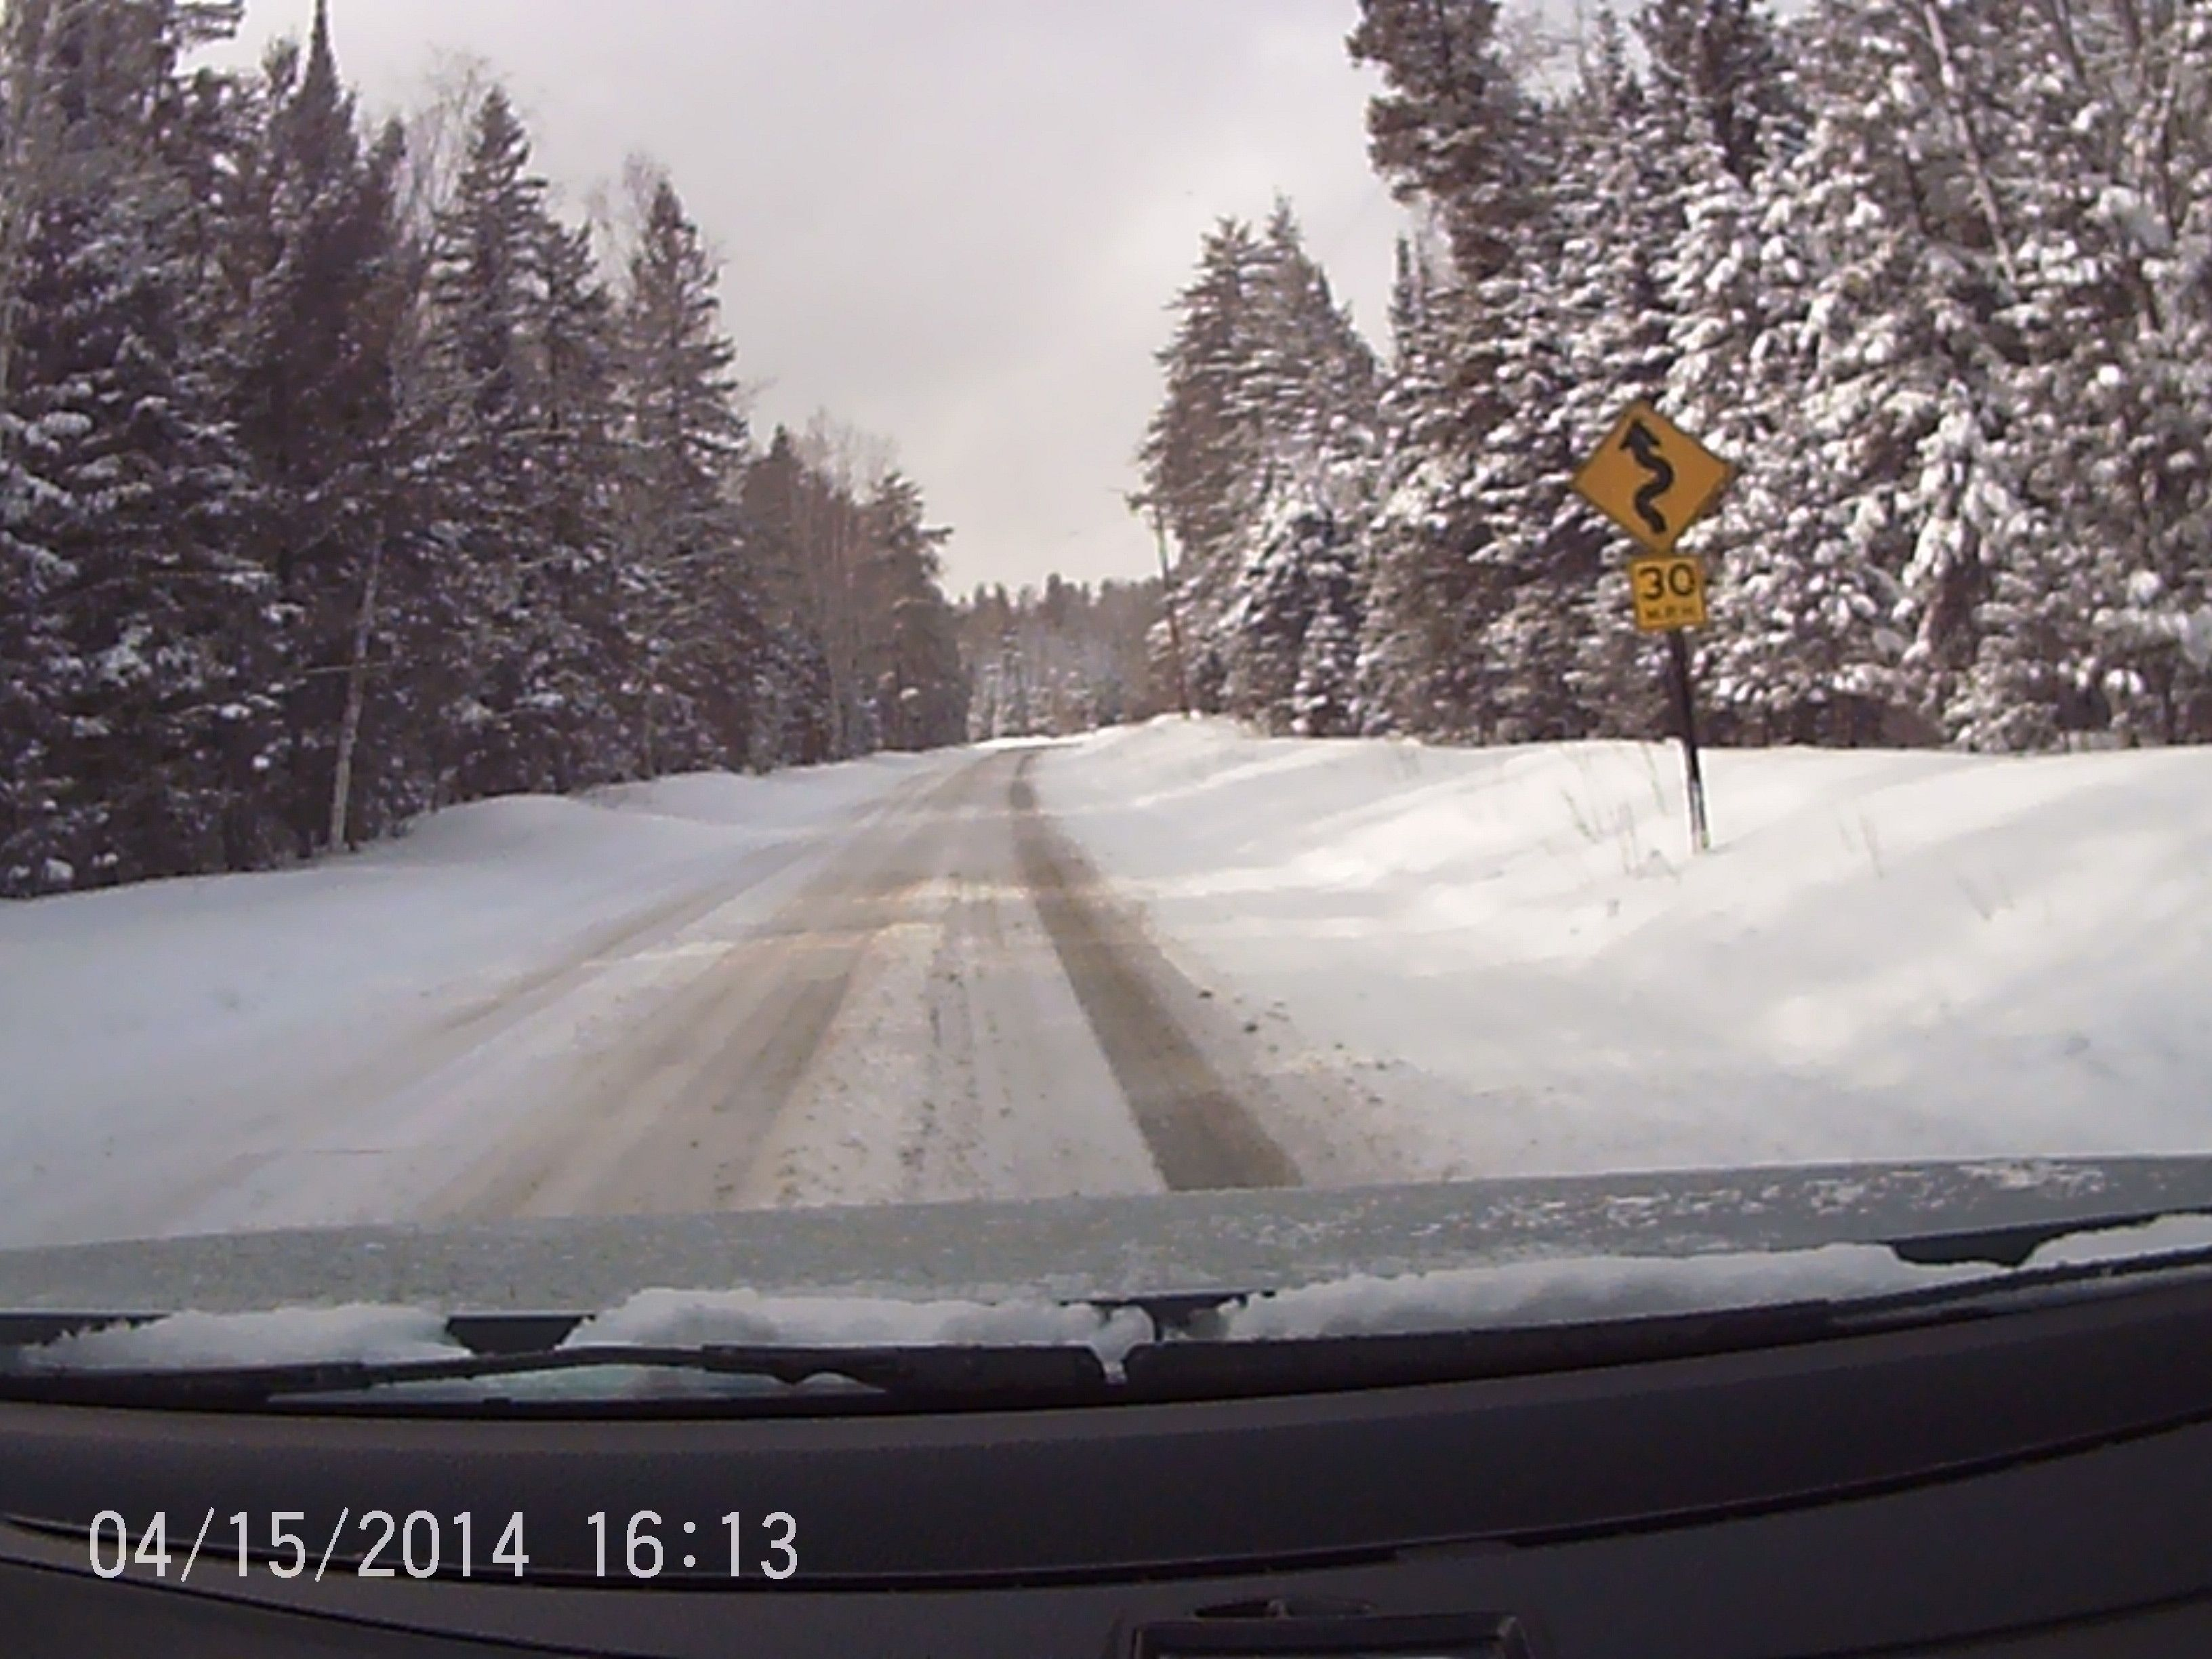 Jason's #HakkapeliittaR2 tackled this winding road with ease all winter long!